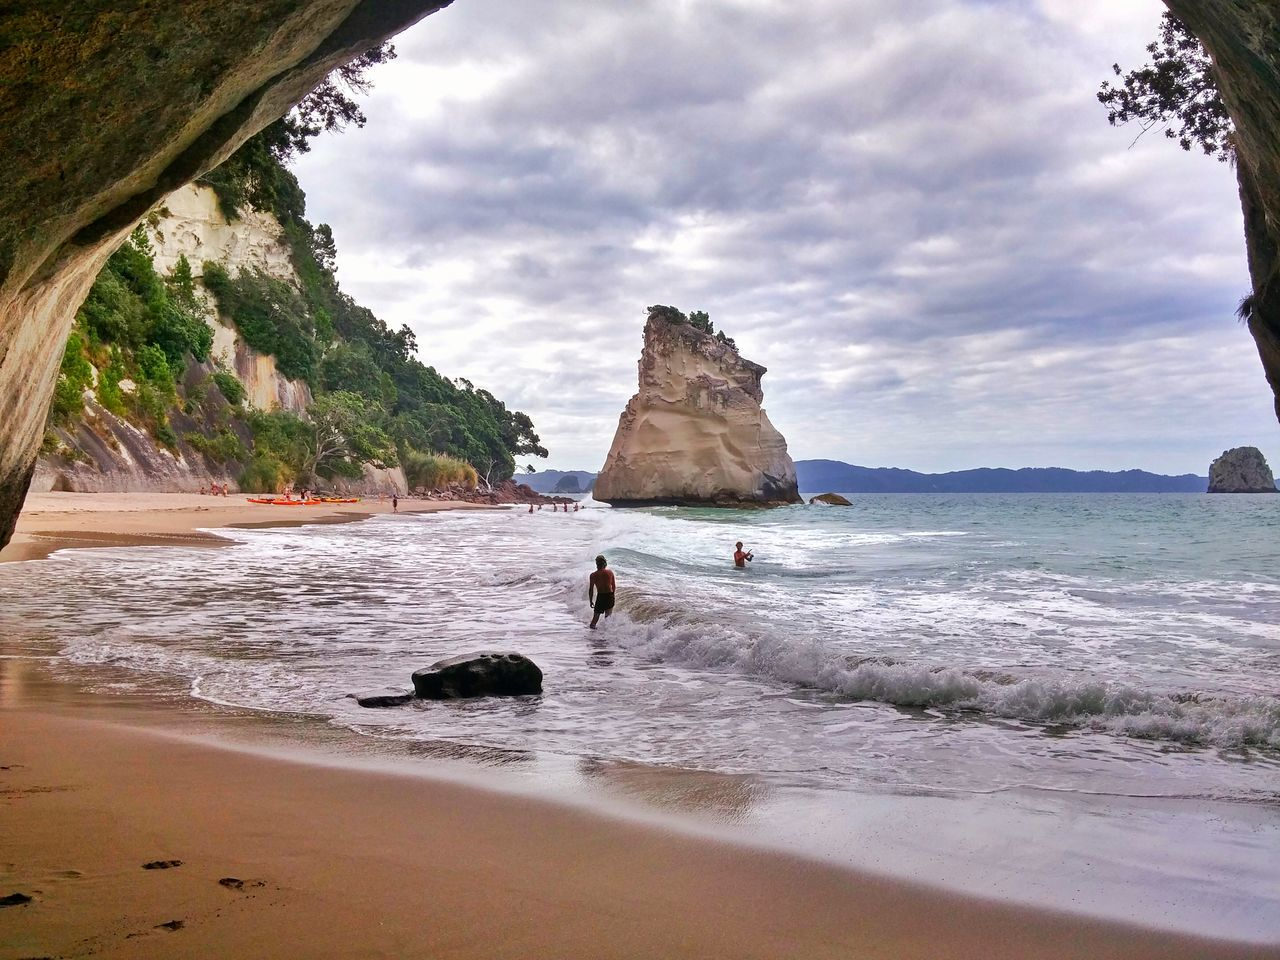 Sometimes you have to stop what you are doing. Go outside. Smell the fresh air. And take in all the beauty that surrounds you!💙💚💙 I Am Lucky New Zealand Scenery Middle Earth Hahei Coromandel Cathedral Cove Landscapes With WhiteWall Engage Your Senses Soul Nourishment A Moment Of Zen... The KIOMI Collection Summer Views Outdoor Photography Vacations My Country And Proud Pacific Chronicles Of Narnia Here Belongs To Me Landscape_Collection The Great Outdoors - 2016 EyeEm Awards Seascape Photography Colour Image Surfs Up Share Your Adventure Paradise